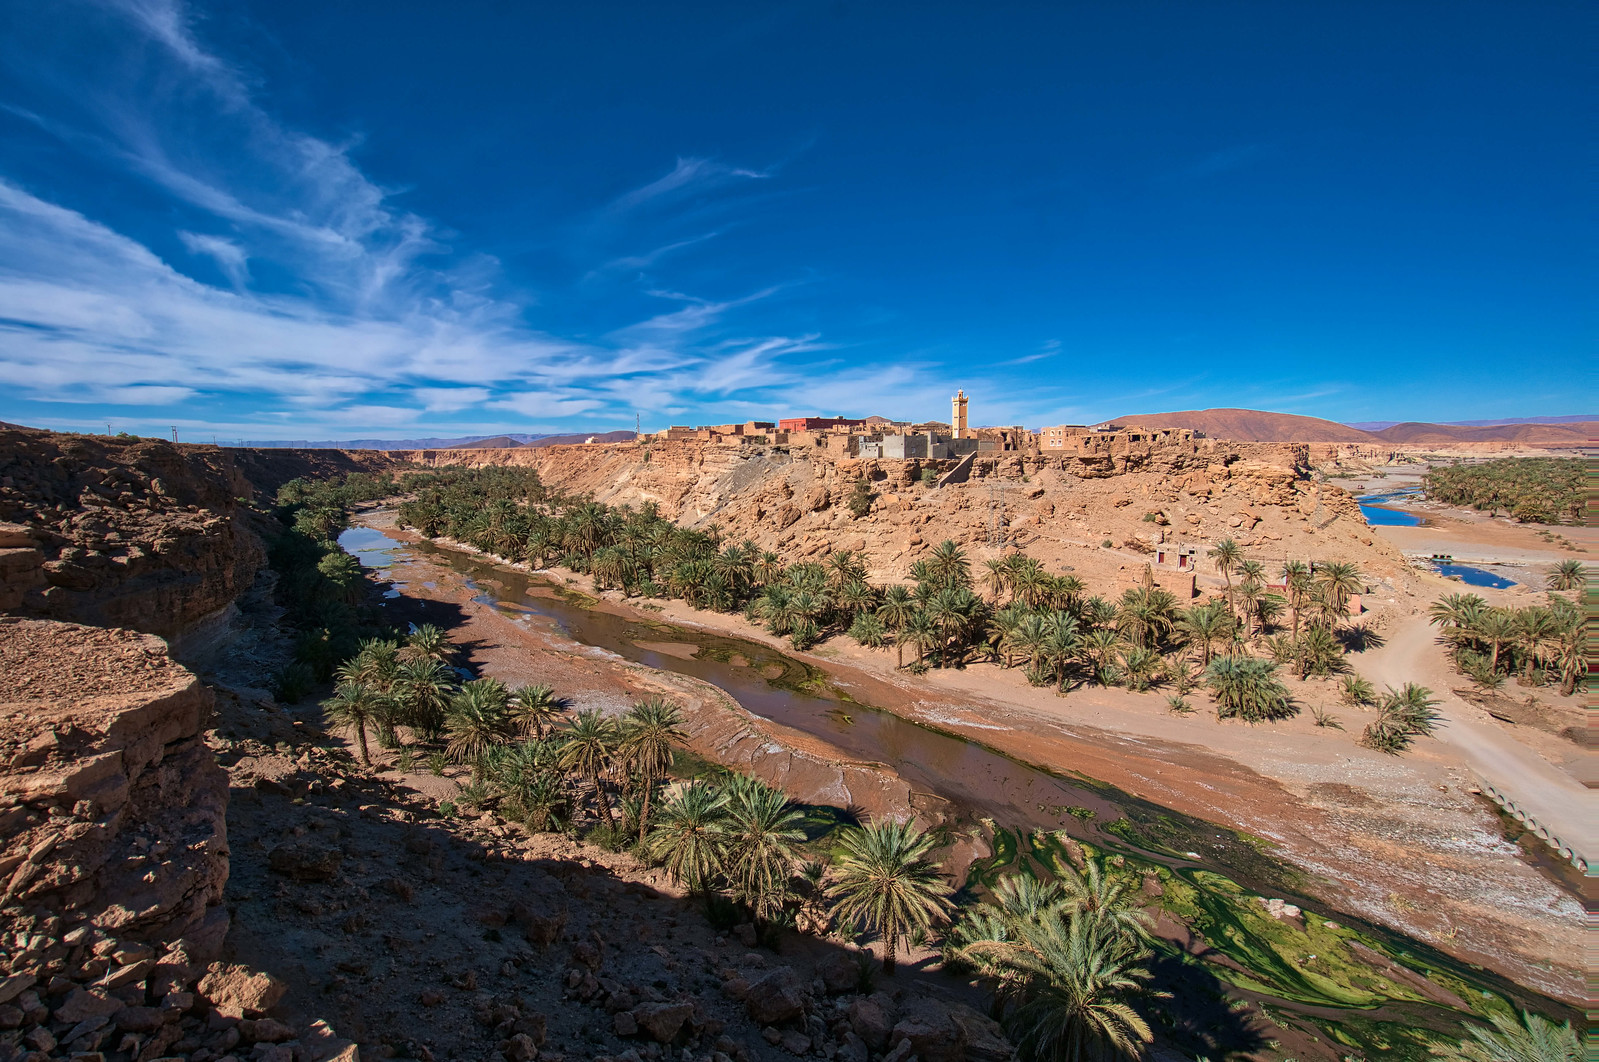 City in Southern Morocco - cycling vacation and photography tour with Kevin Wenning